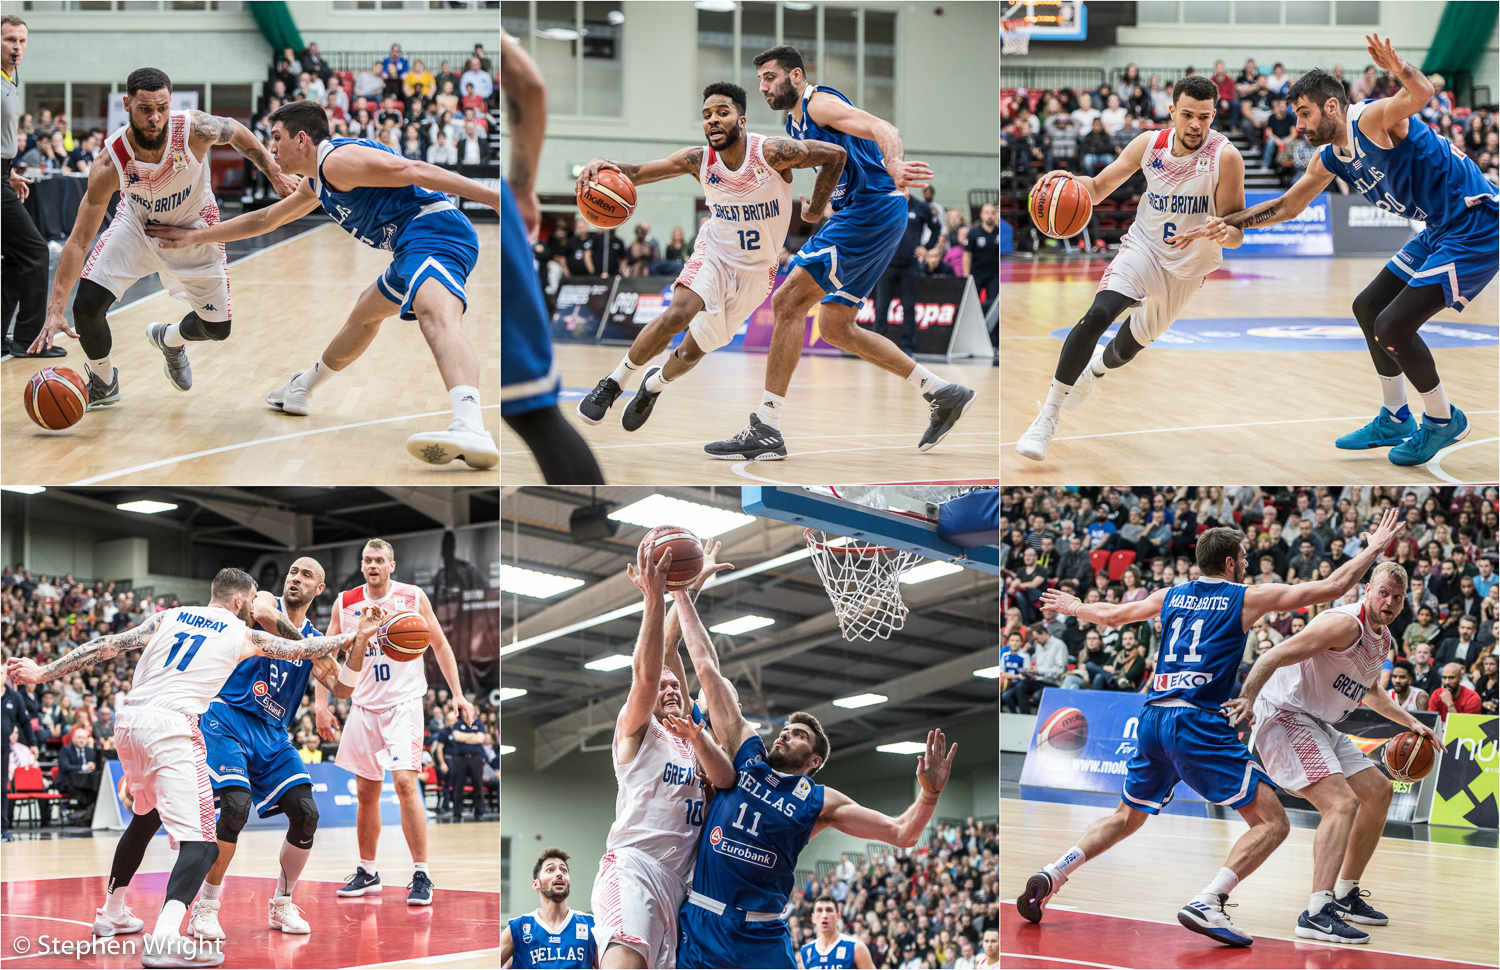 Action shots from the  FIBA Basketball World Cup  qualifiers between  Great Britain  and  Greece  at the  Leicester Arena .